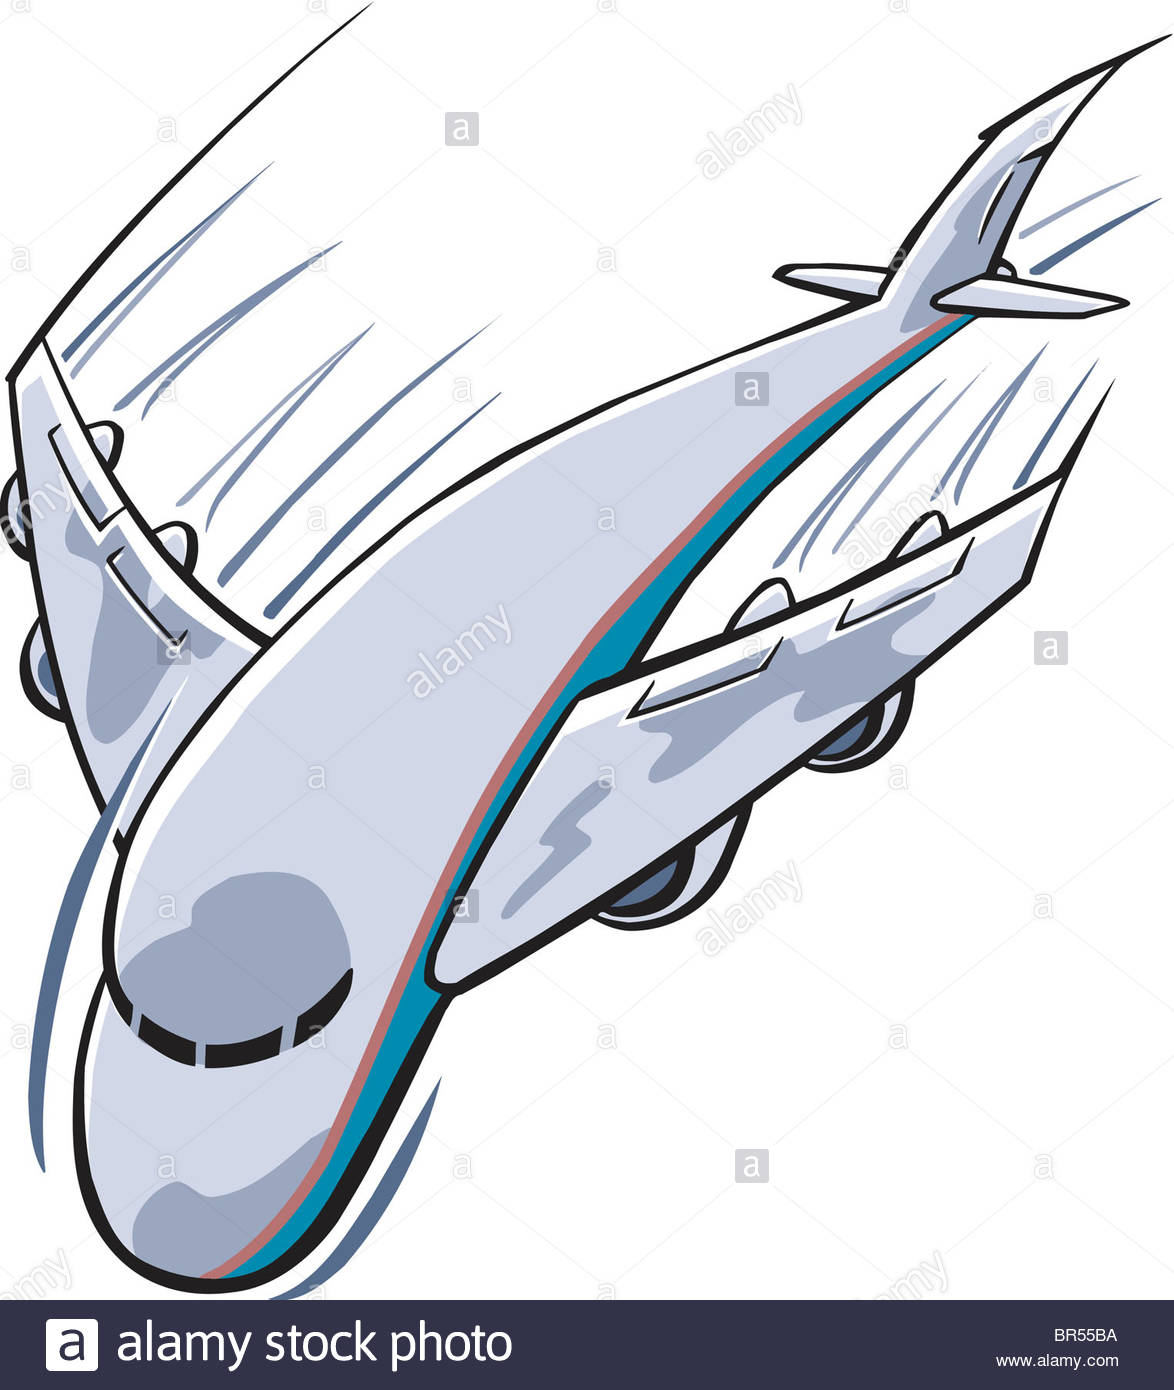 1174x1390 A Cartoon Drawing Of A Fast Airplane Stock Photo 31461454